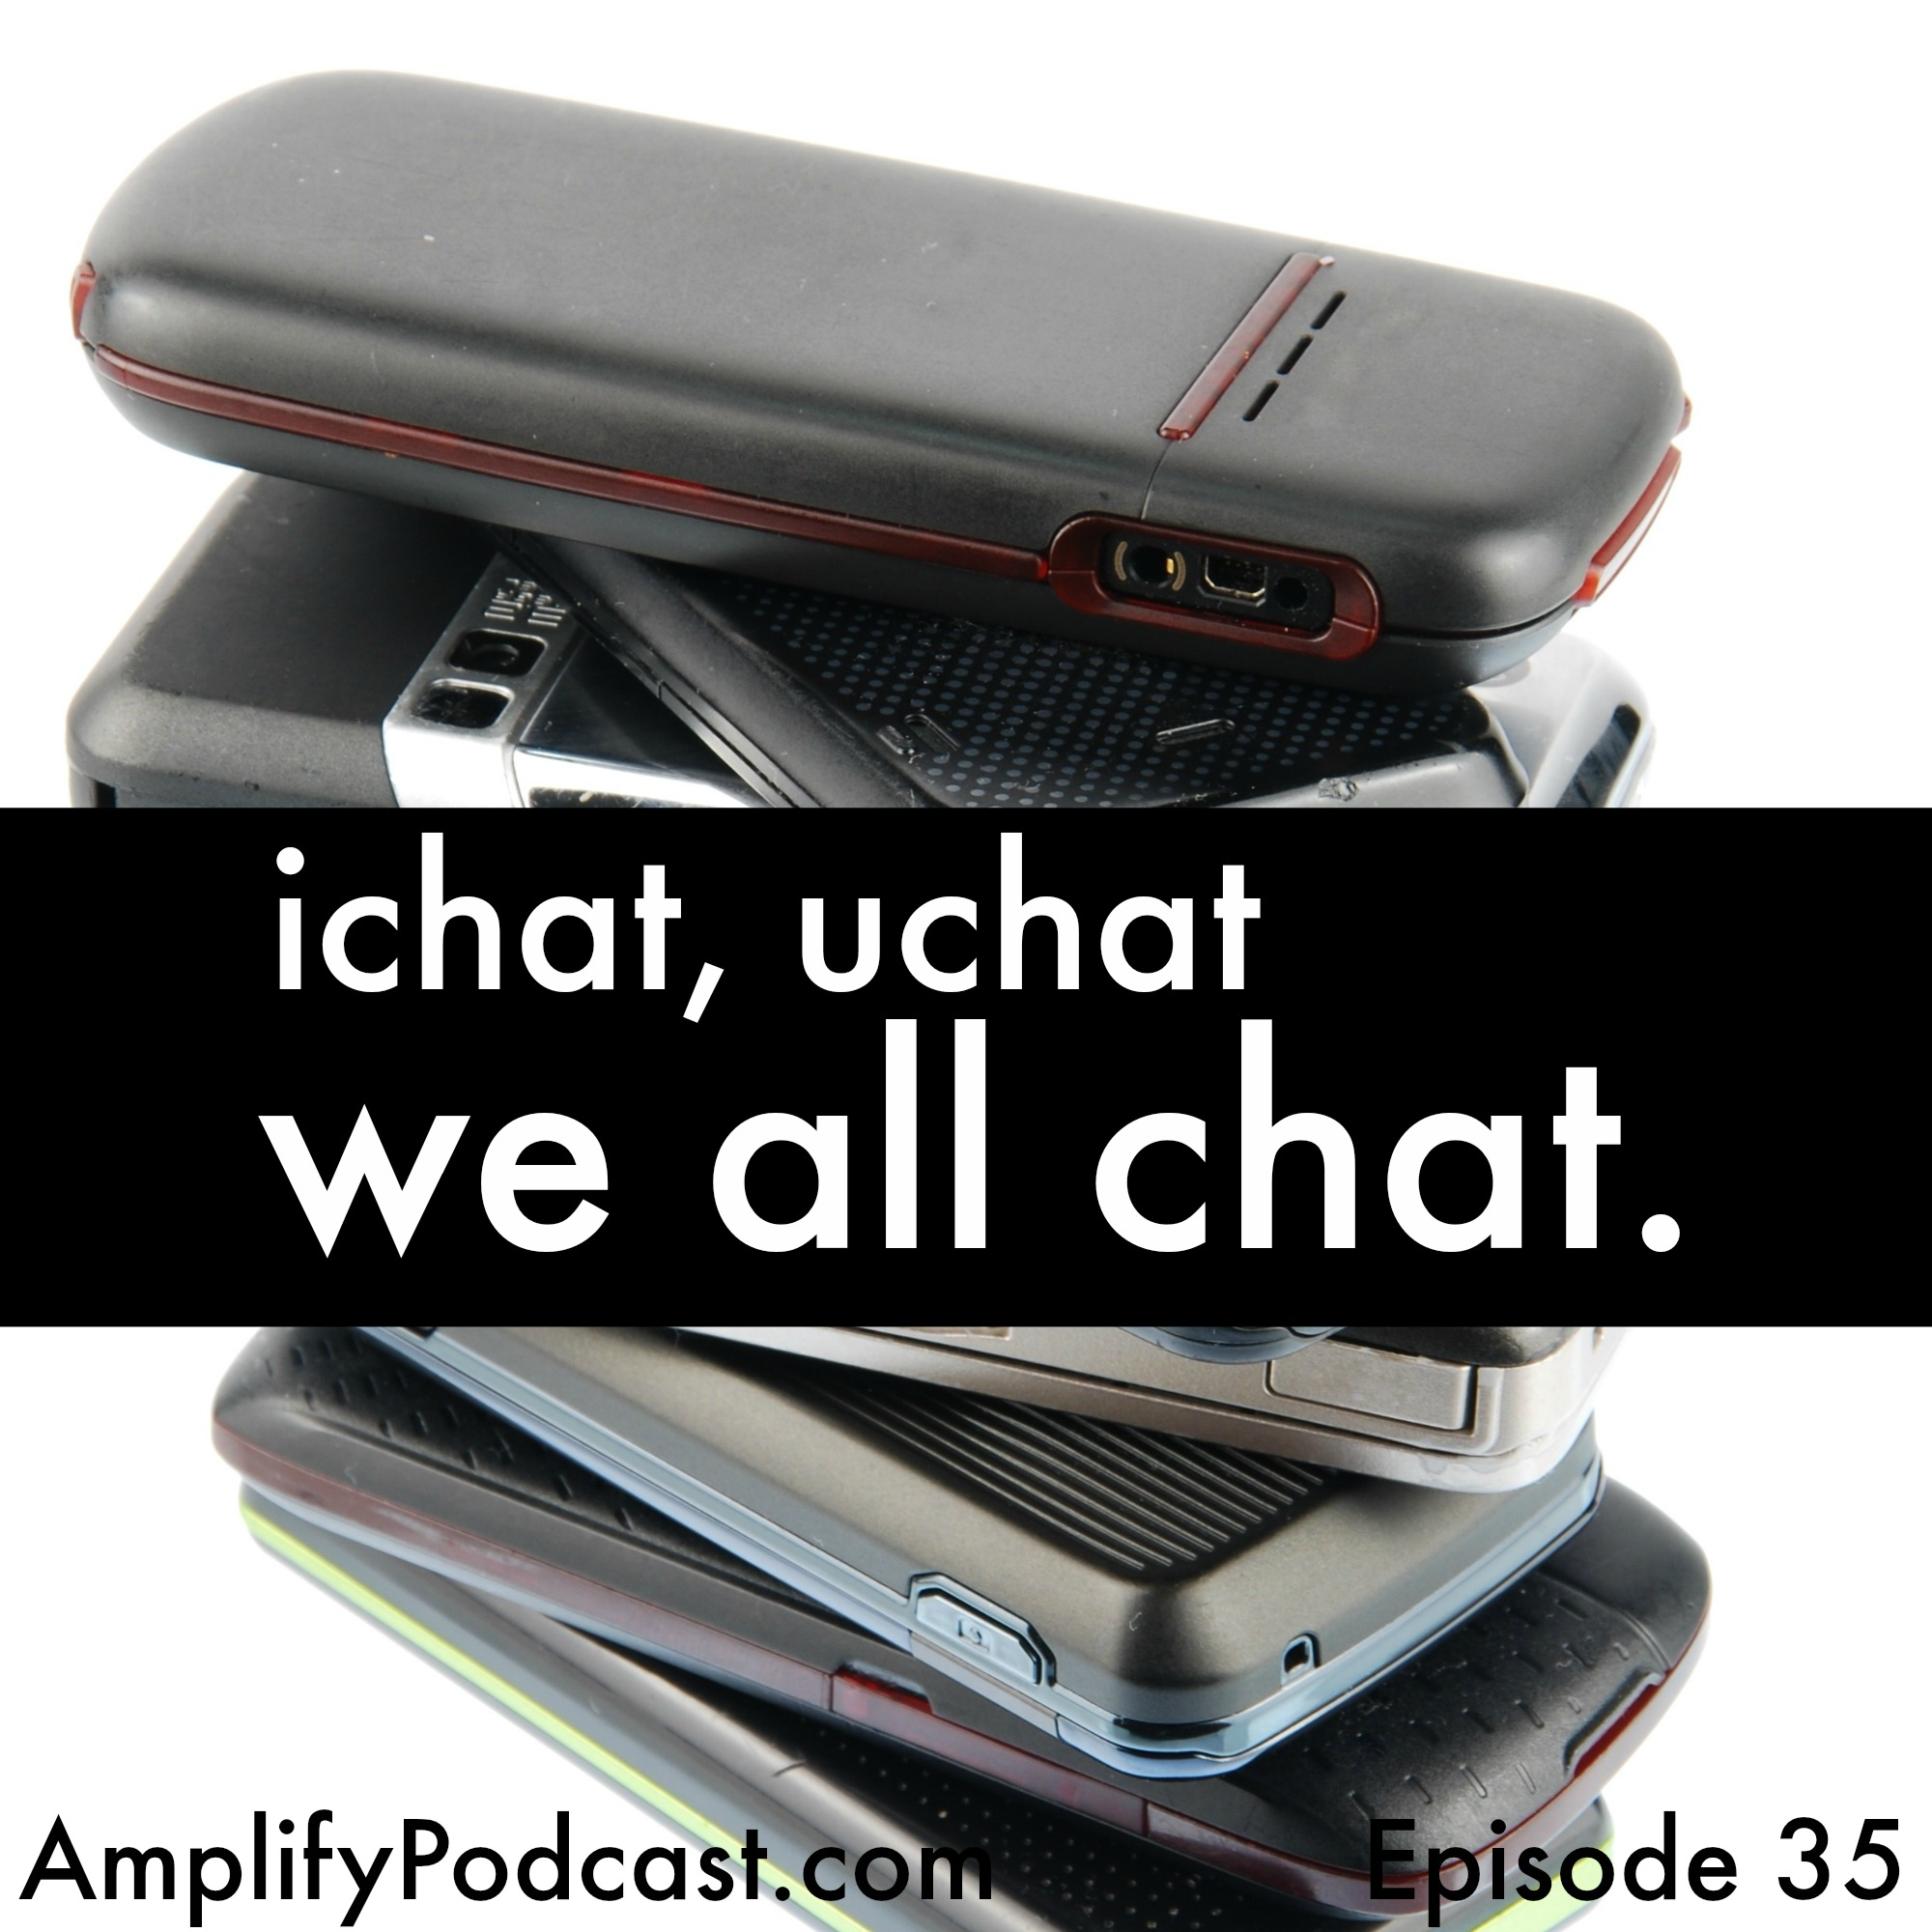 iChat, uChat, We All Chat